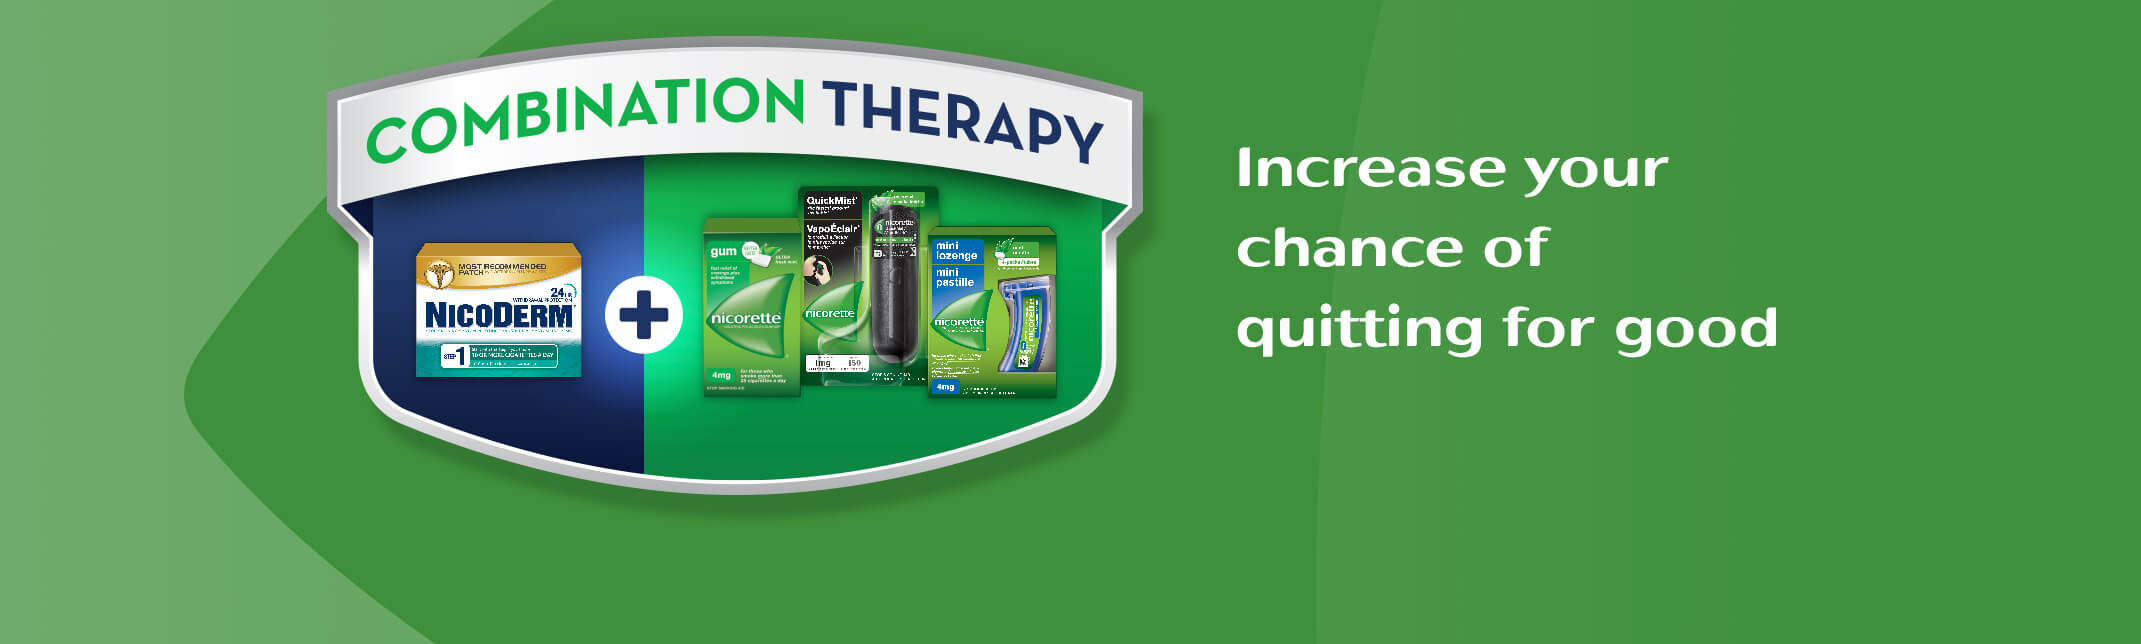 Combination therapy by Nicorette and NicoDerm